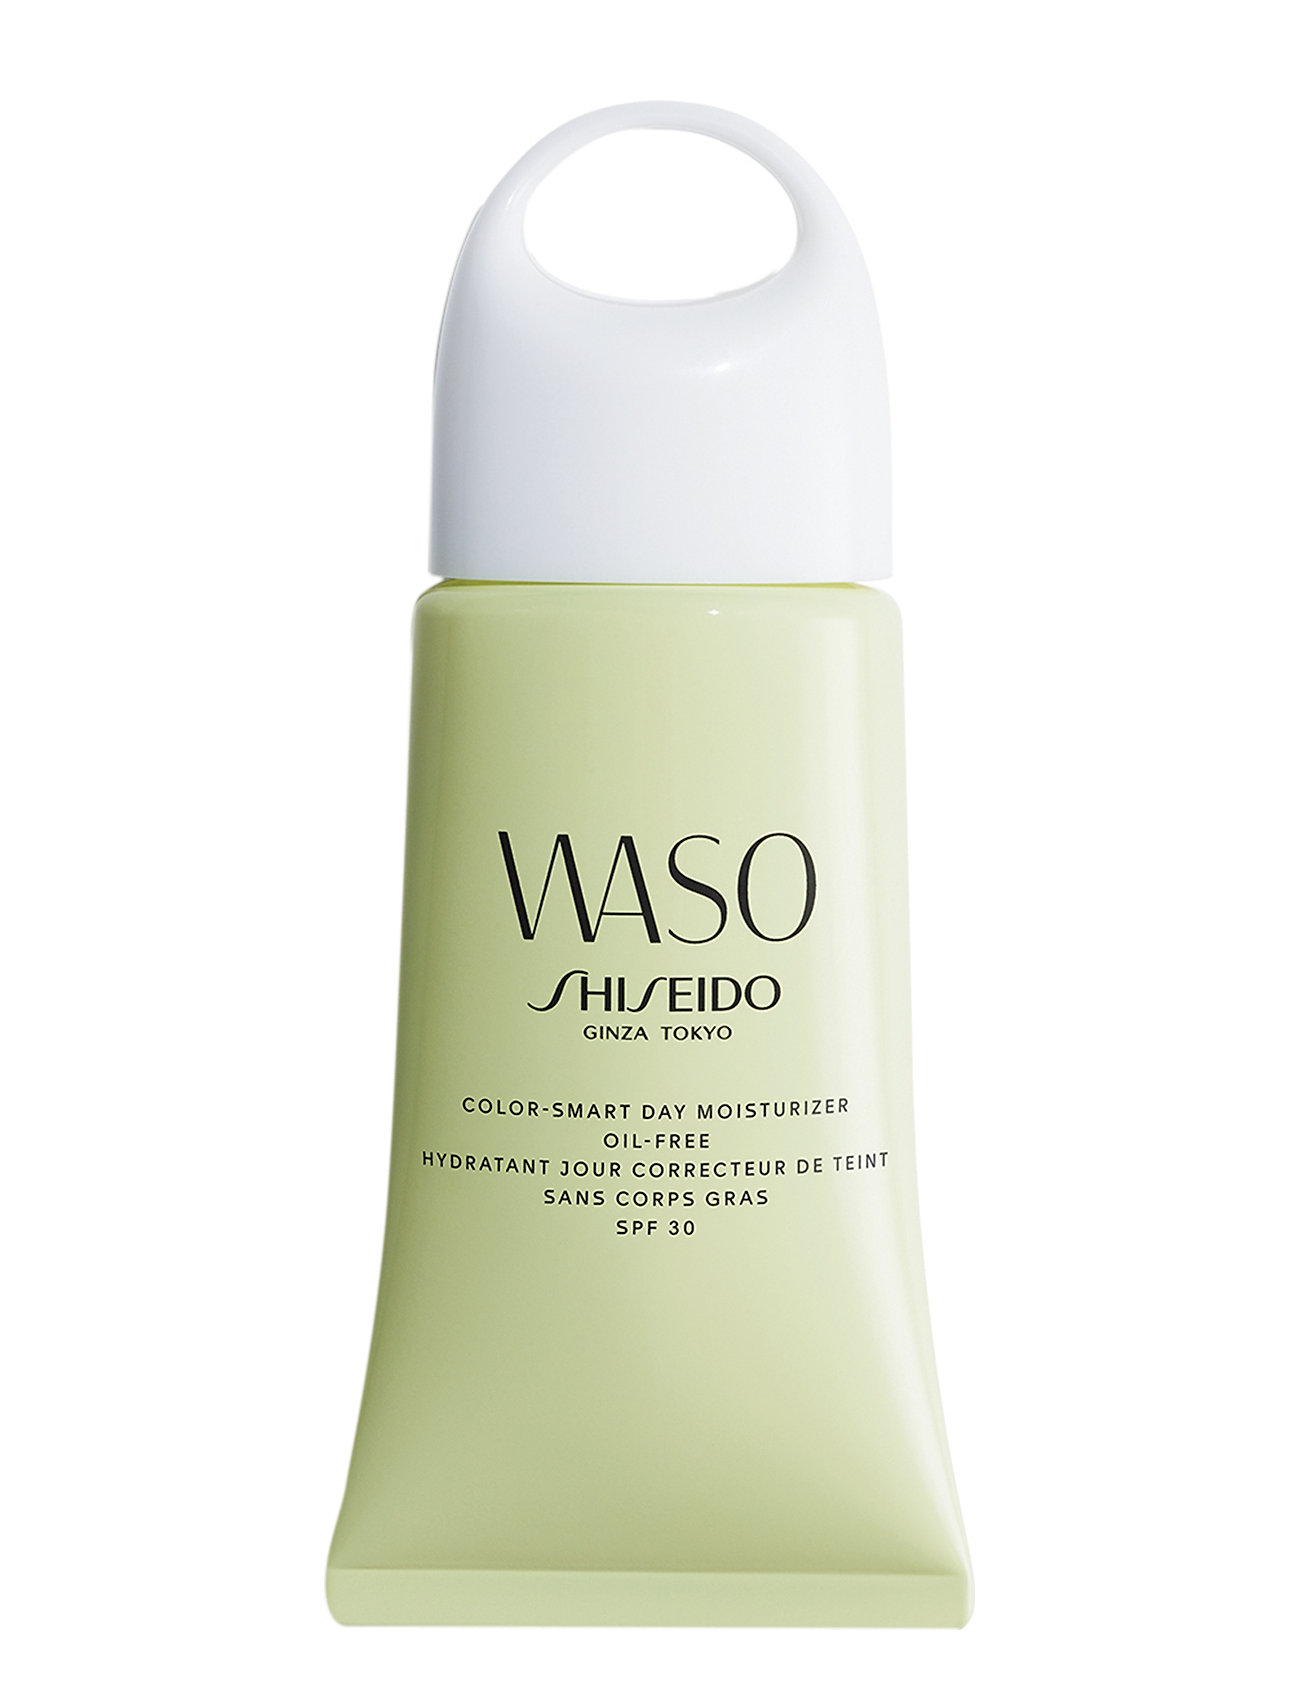 Image of Waso Color Smart Day Moisturizer Oil Free Beauty WOMEN Skin Care Face Day Creams Nude Shiseido (3436041567)